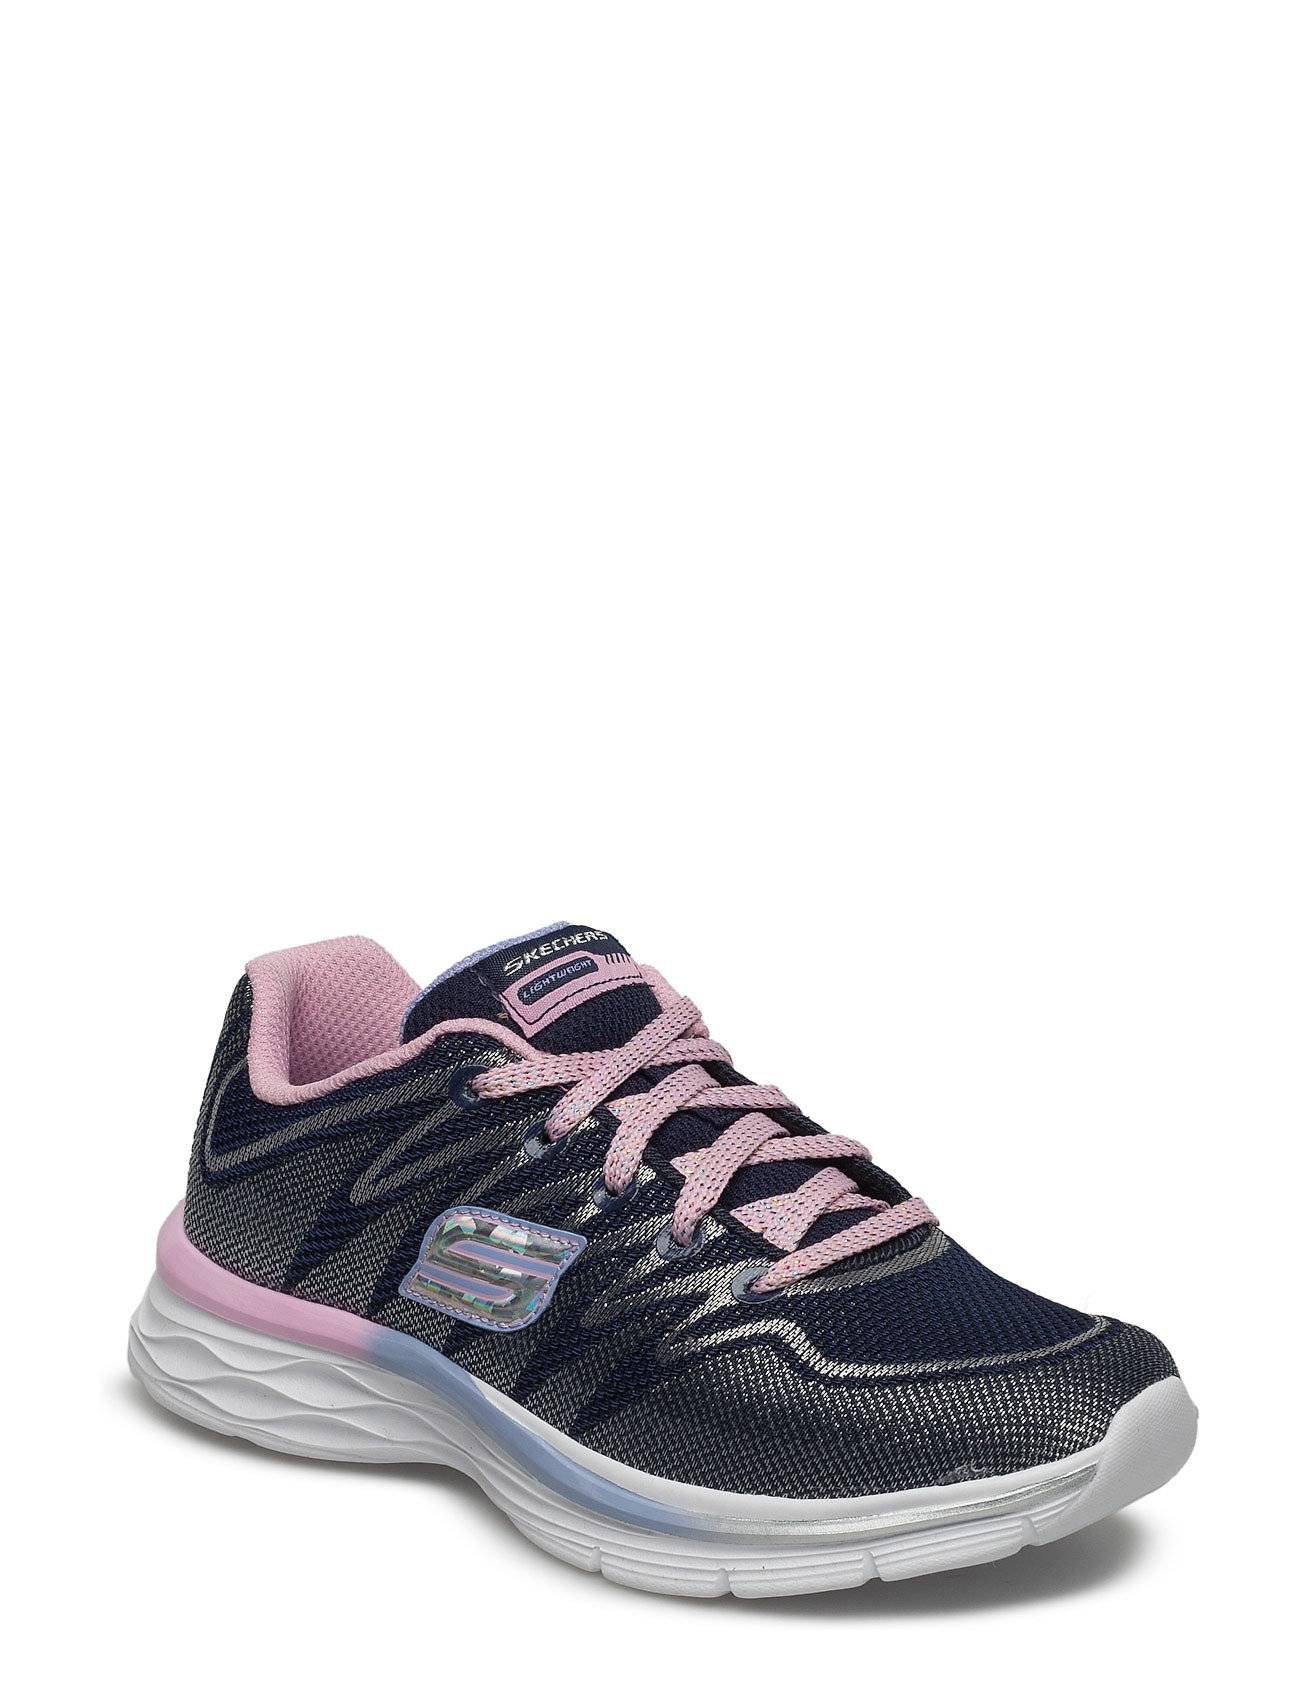 Skechers Girls Dream N